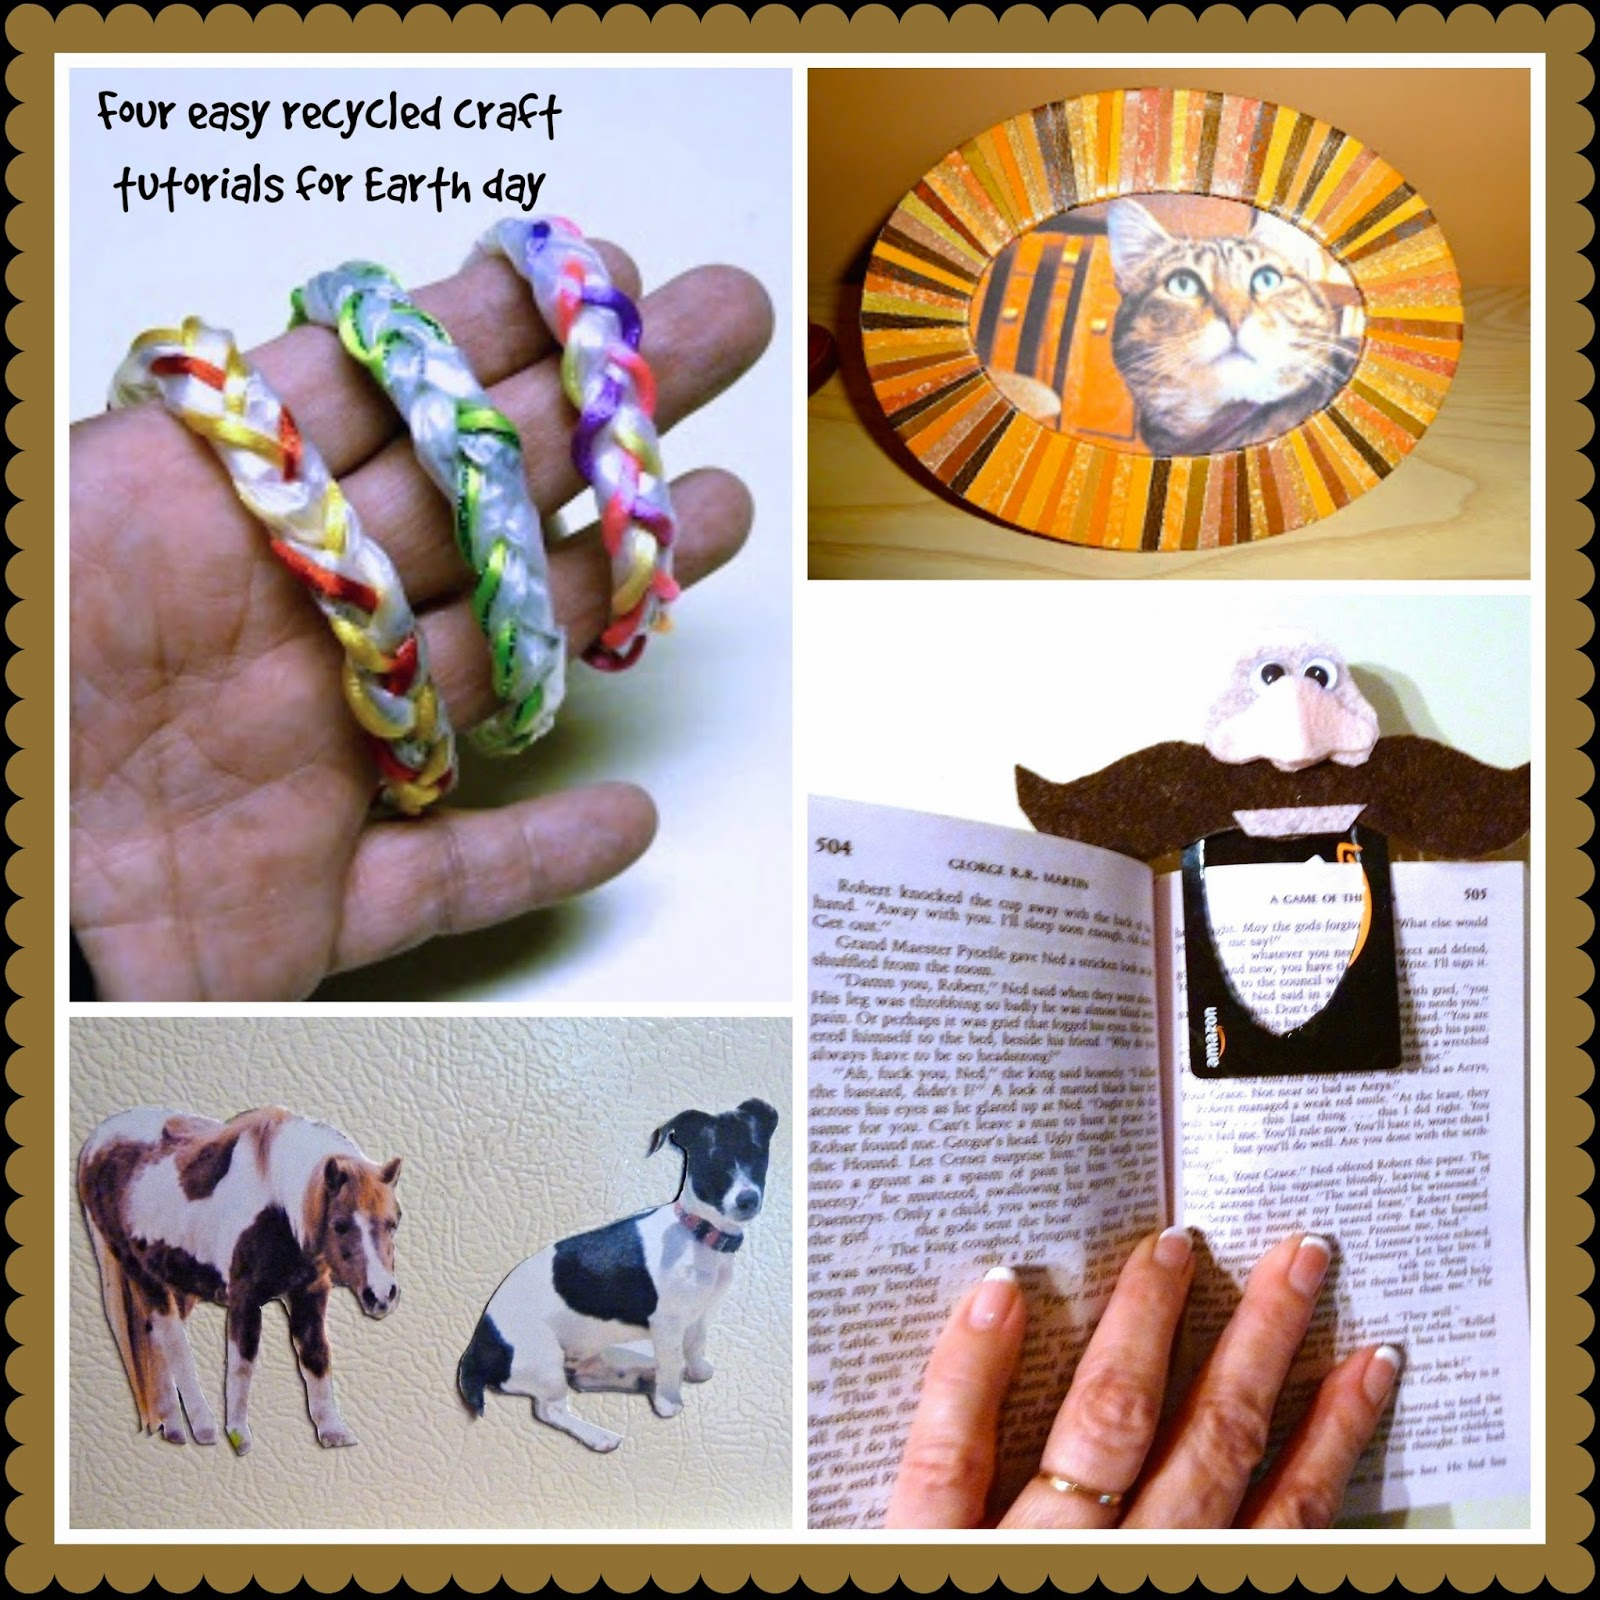 Four recycled crafts for Earth Day